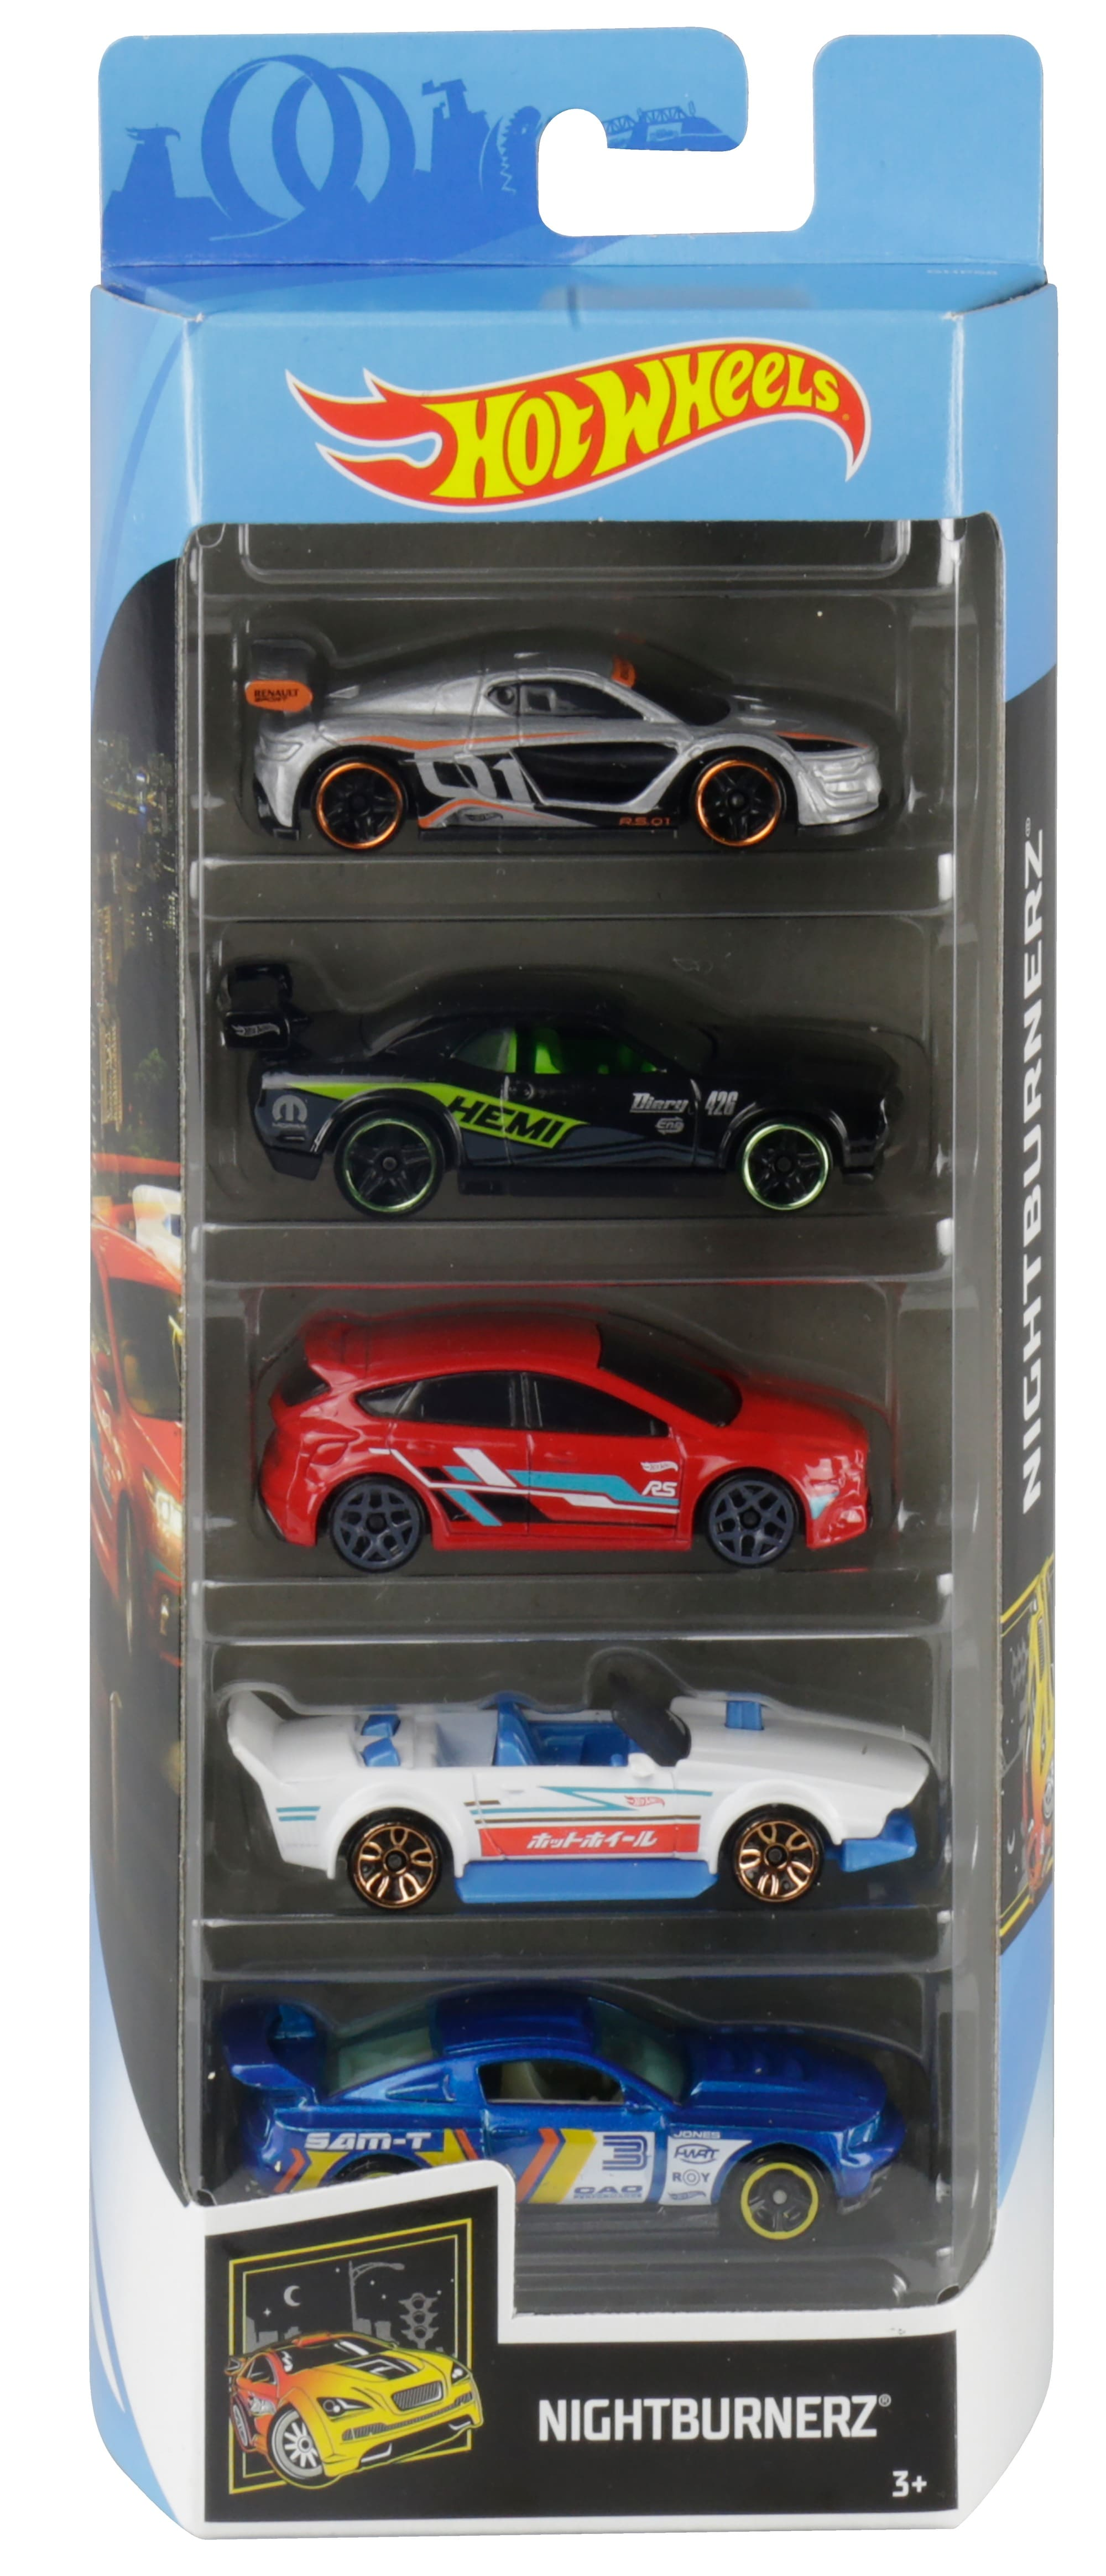 Hot Wheels 5-Car Collector Gift Pack, $4.97 (Reg $7.28)+Free Shipping